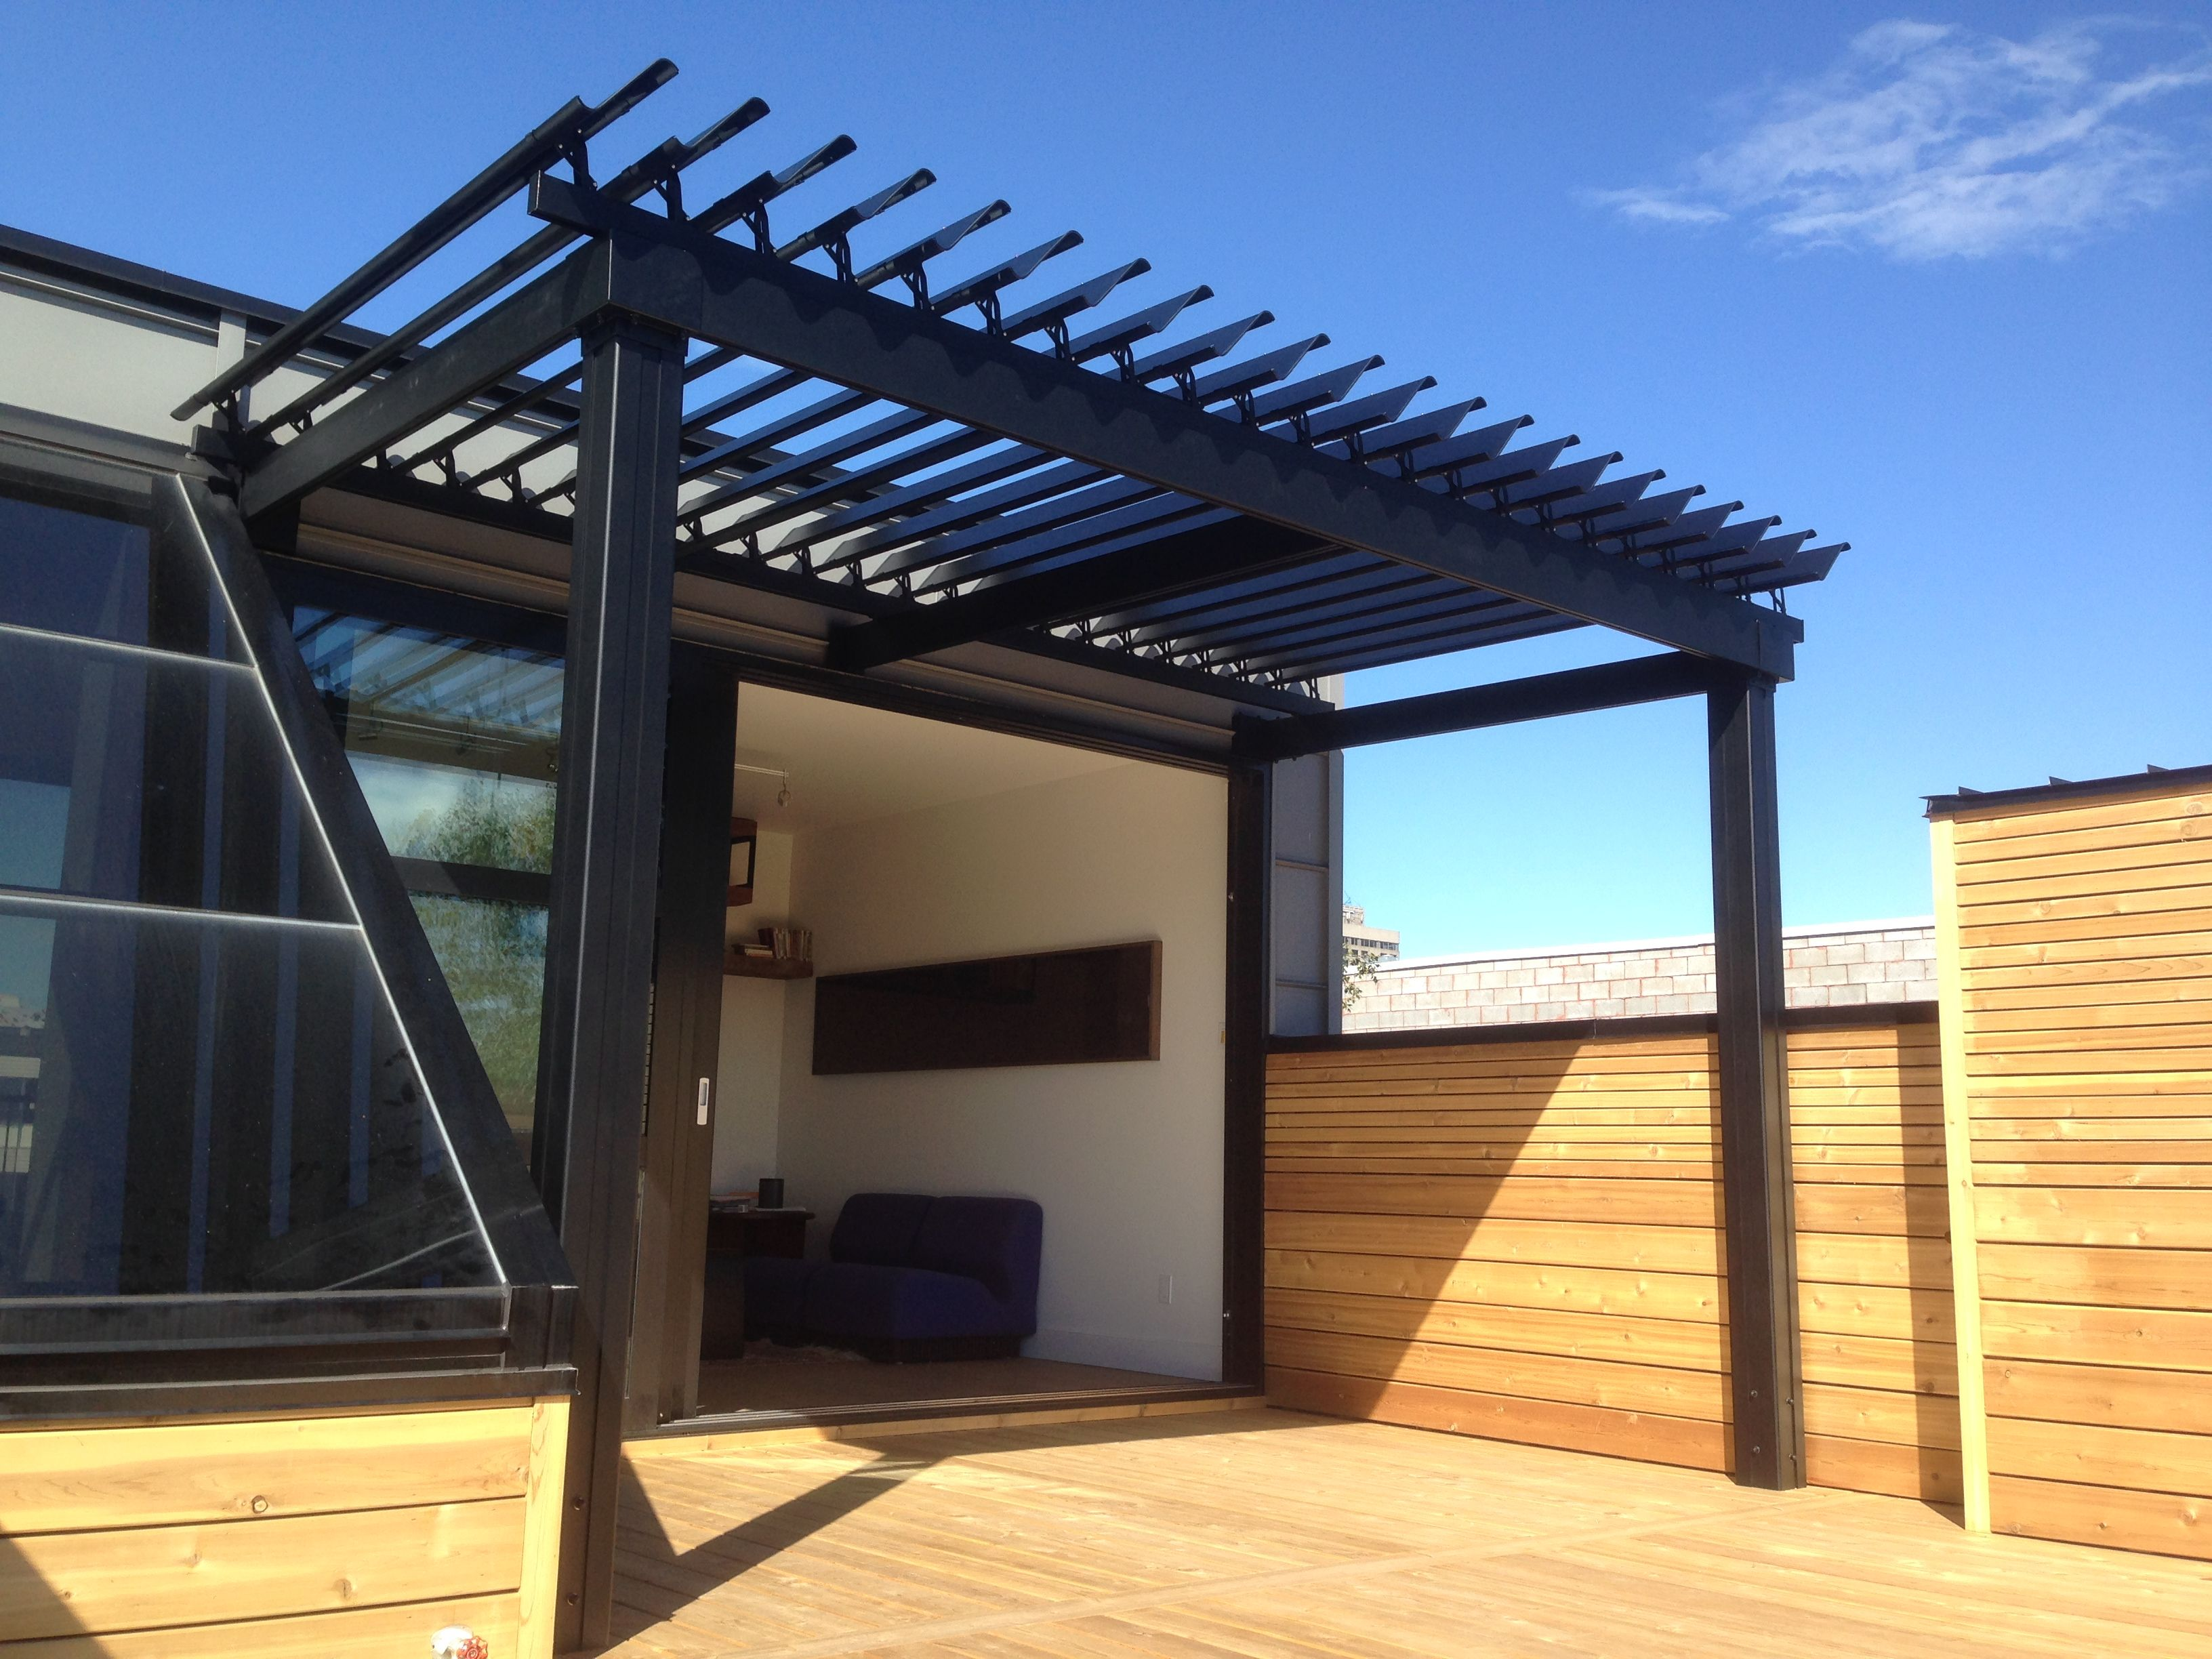 toit de terrasse en aluminium descriptif pergola toit terrasse aluminium x m anthracite with. Black Bedroom Furniture Sets. Home Design Ideas